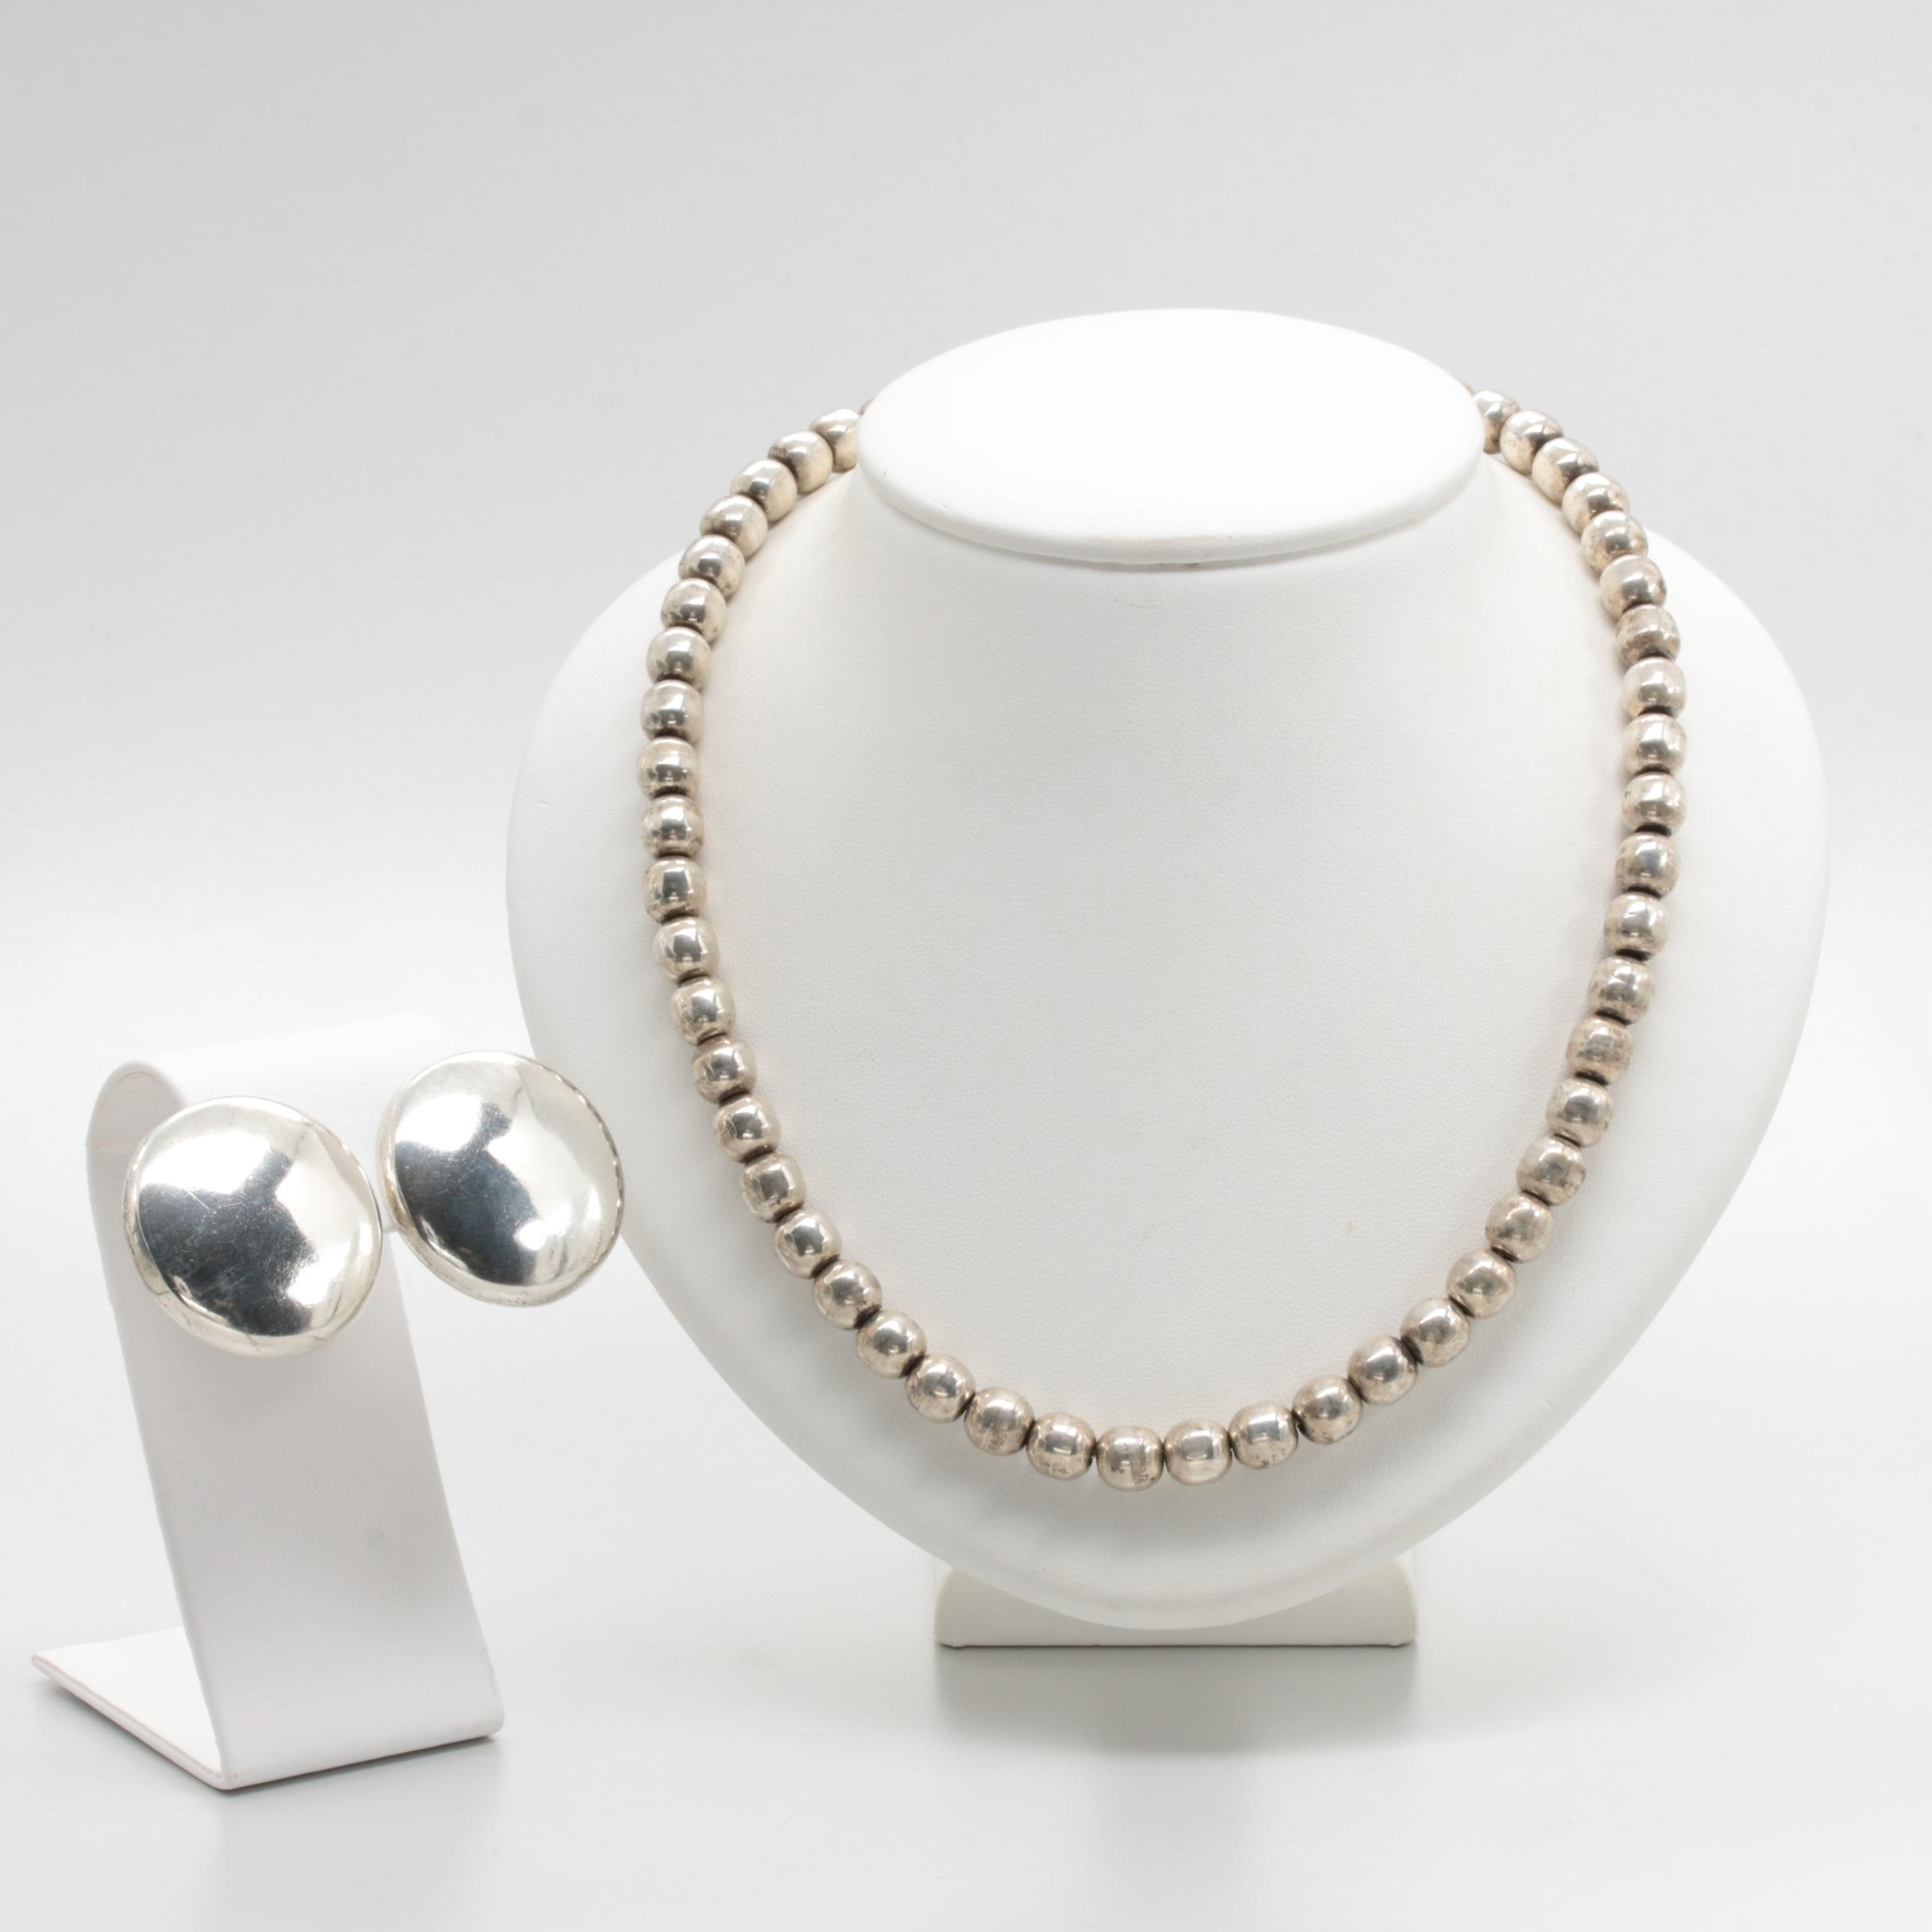 Mexican Sterling Silver Beaded Sphere Necklace and Earrings